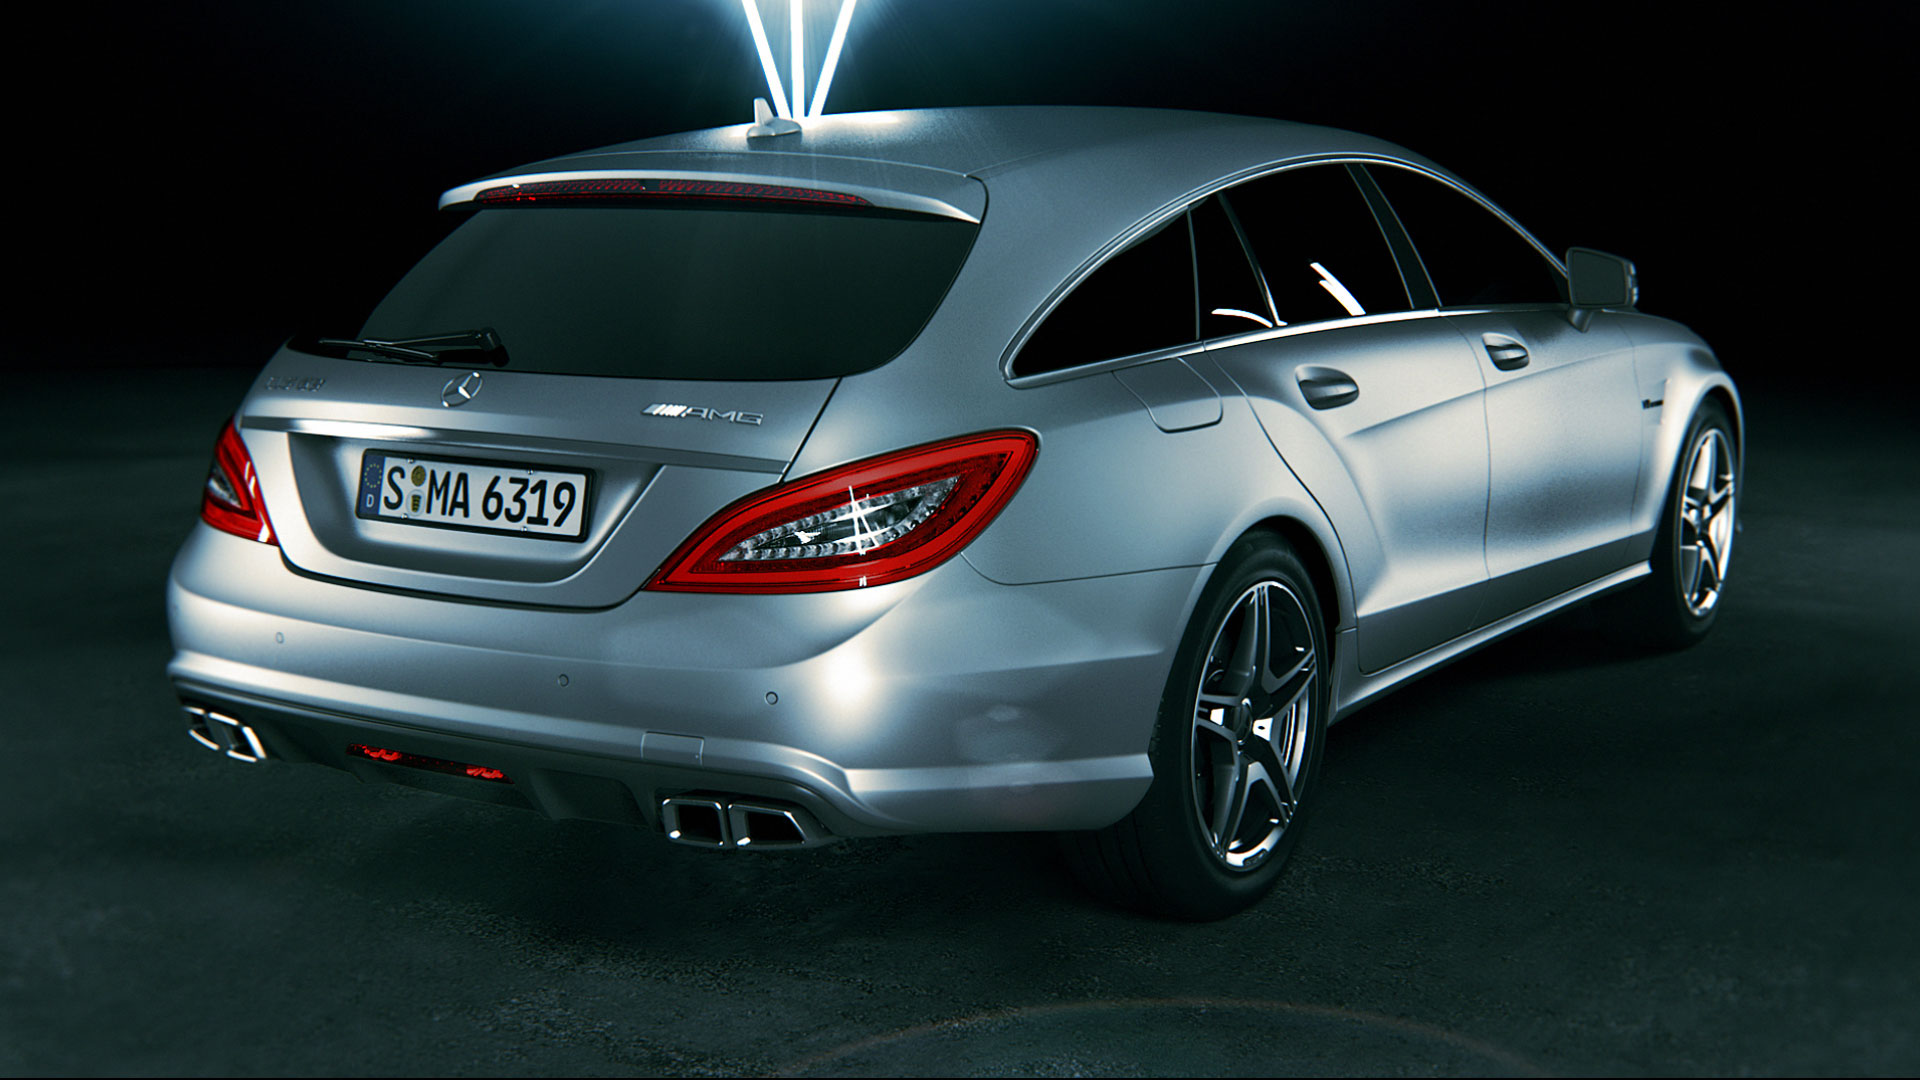 Backview Mercedes-Benz CLS promotion movie.